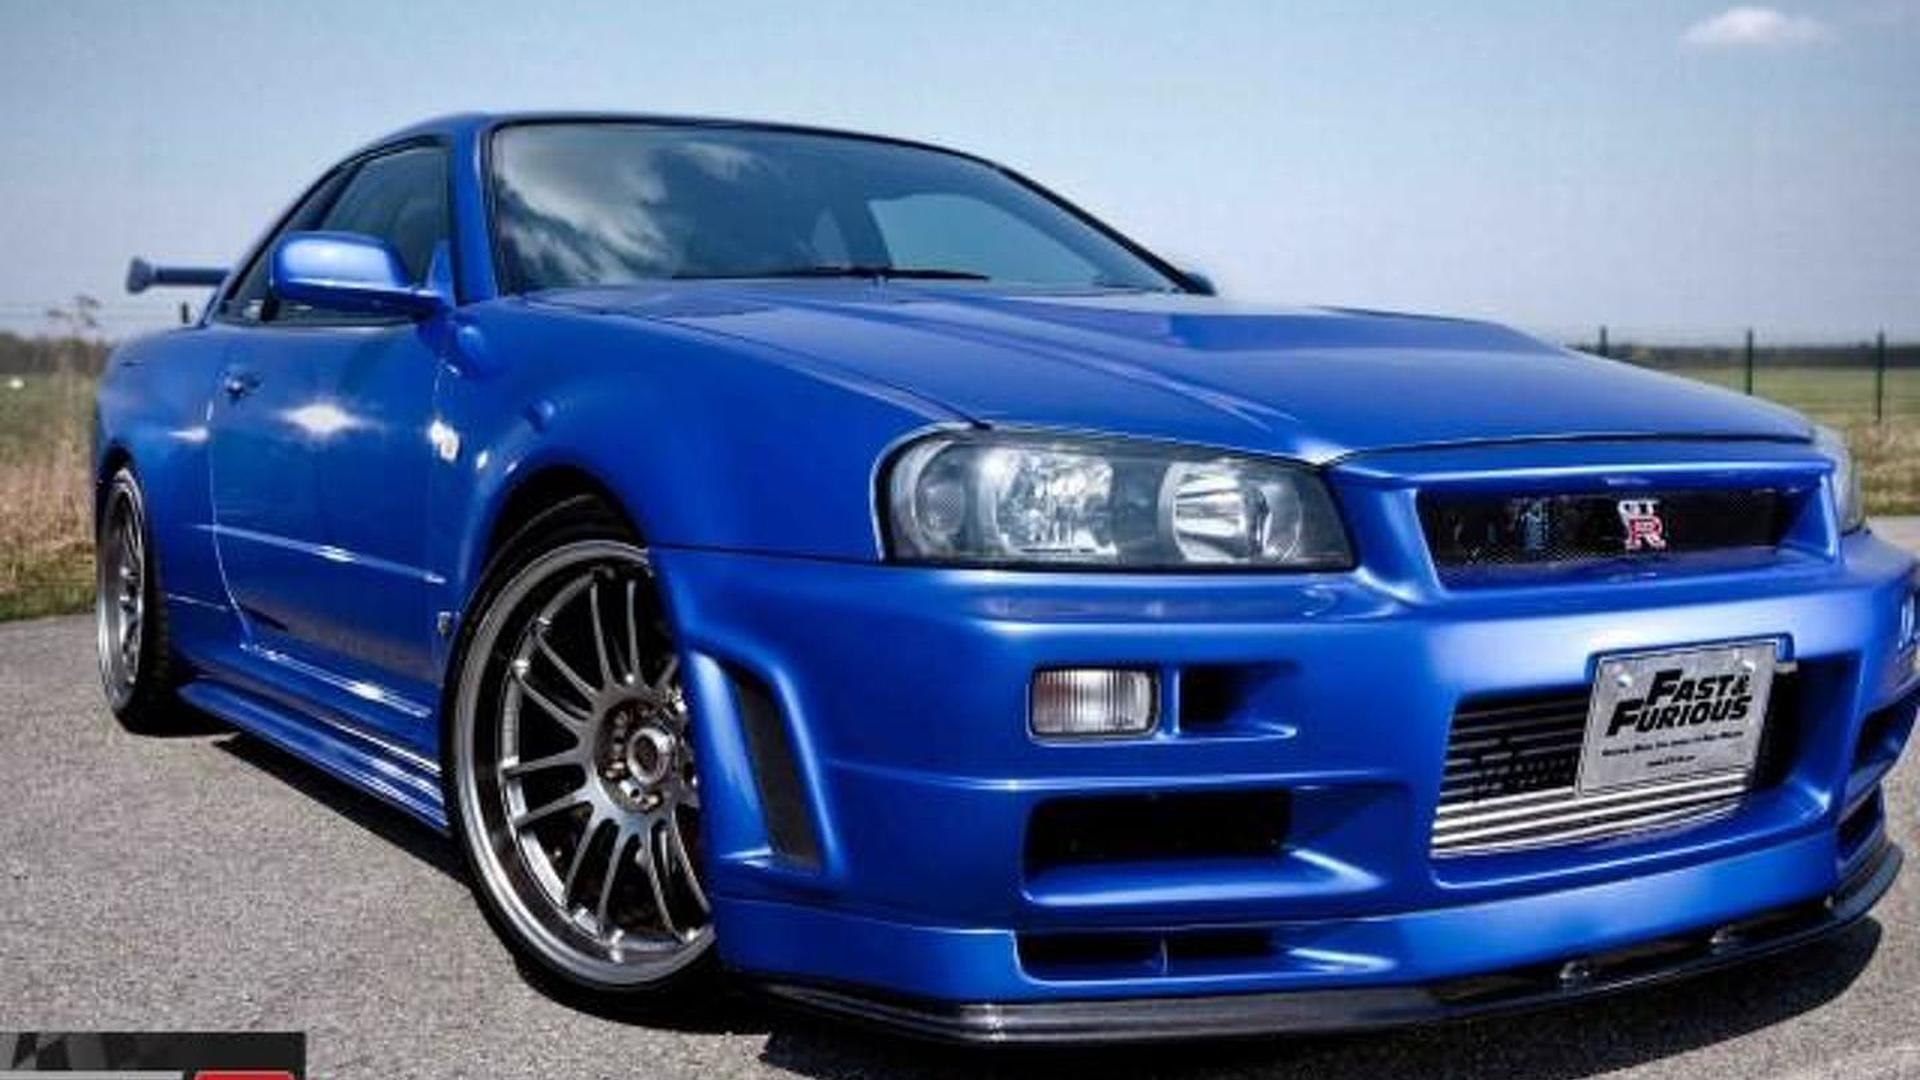 Nissan Skyline GT-R R34 from Fast & Furious 4 on sale